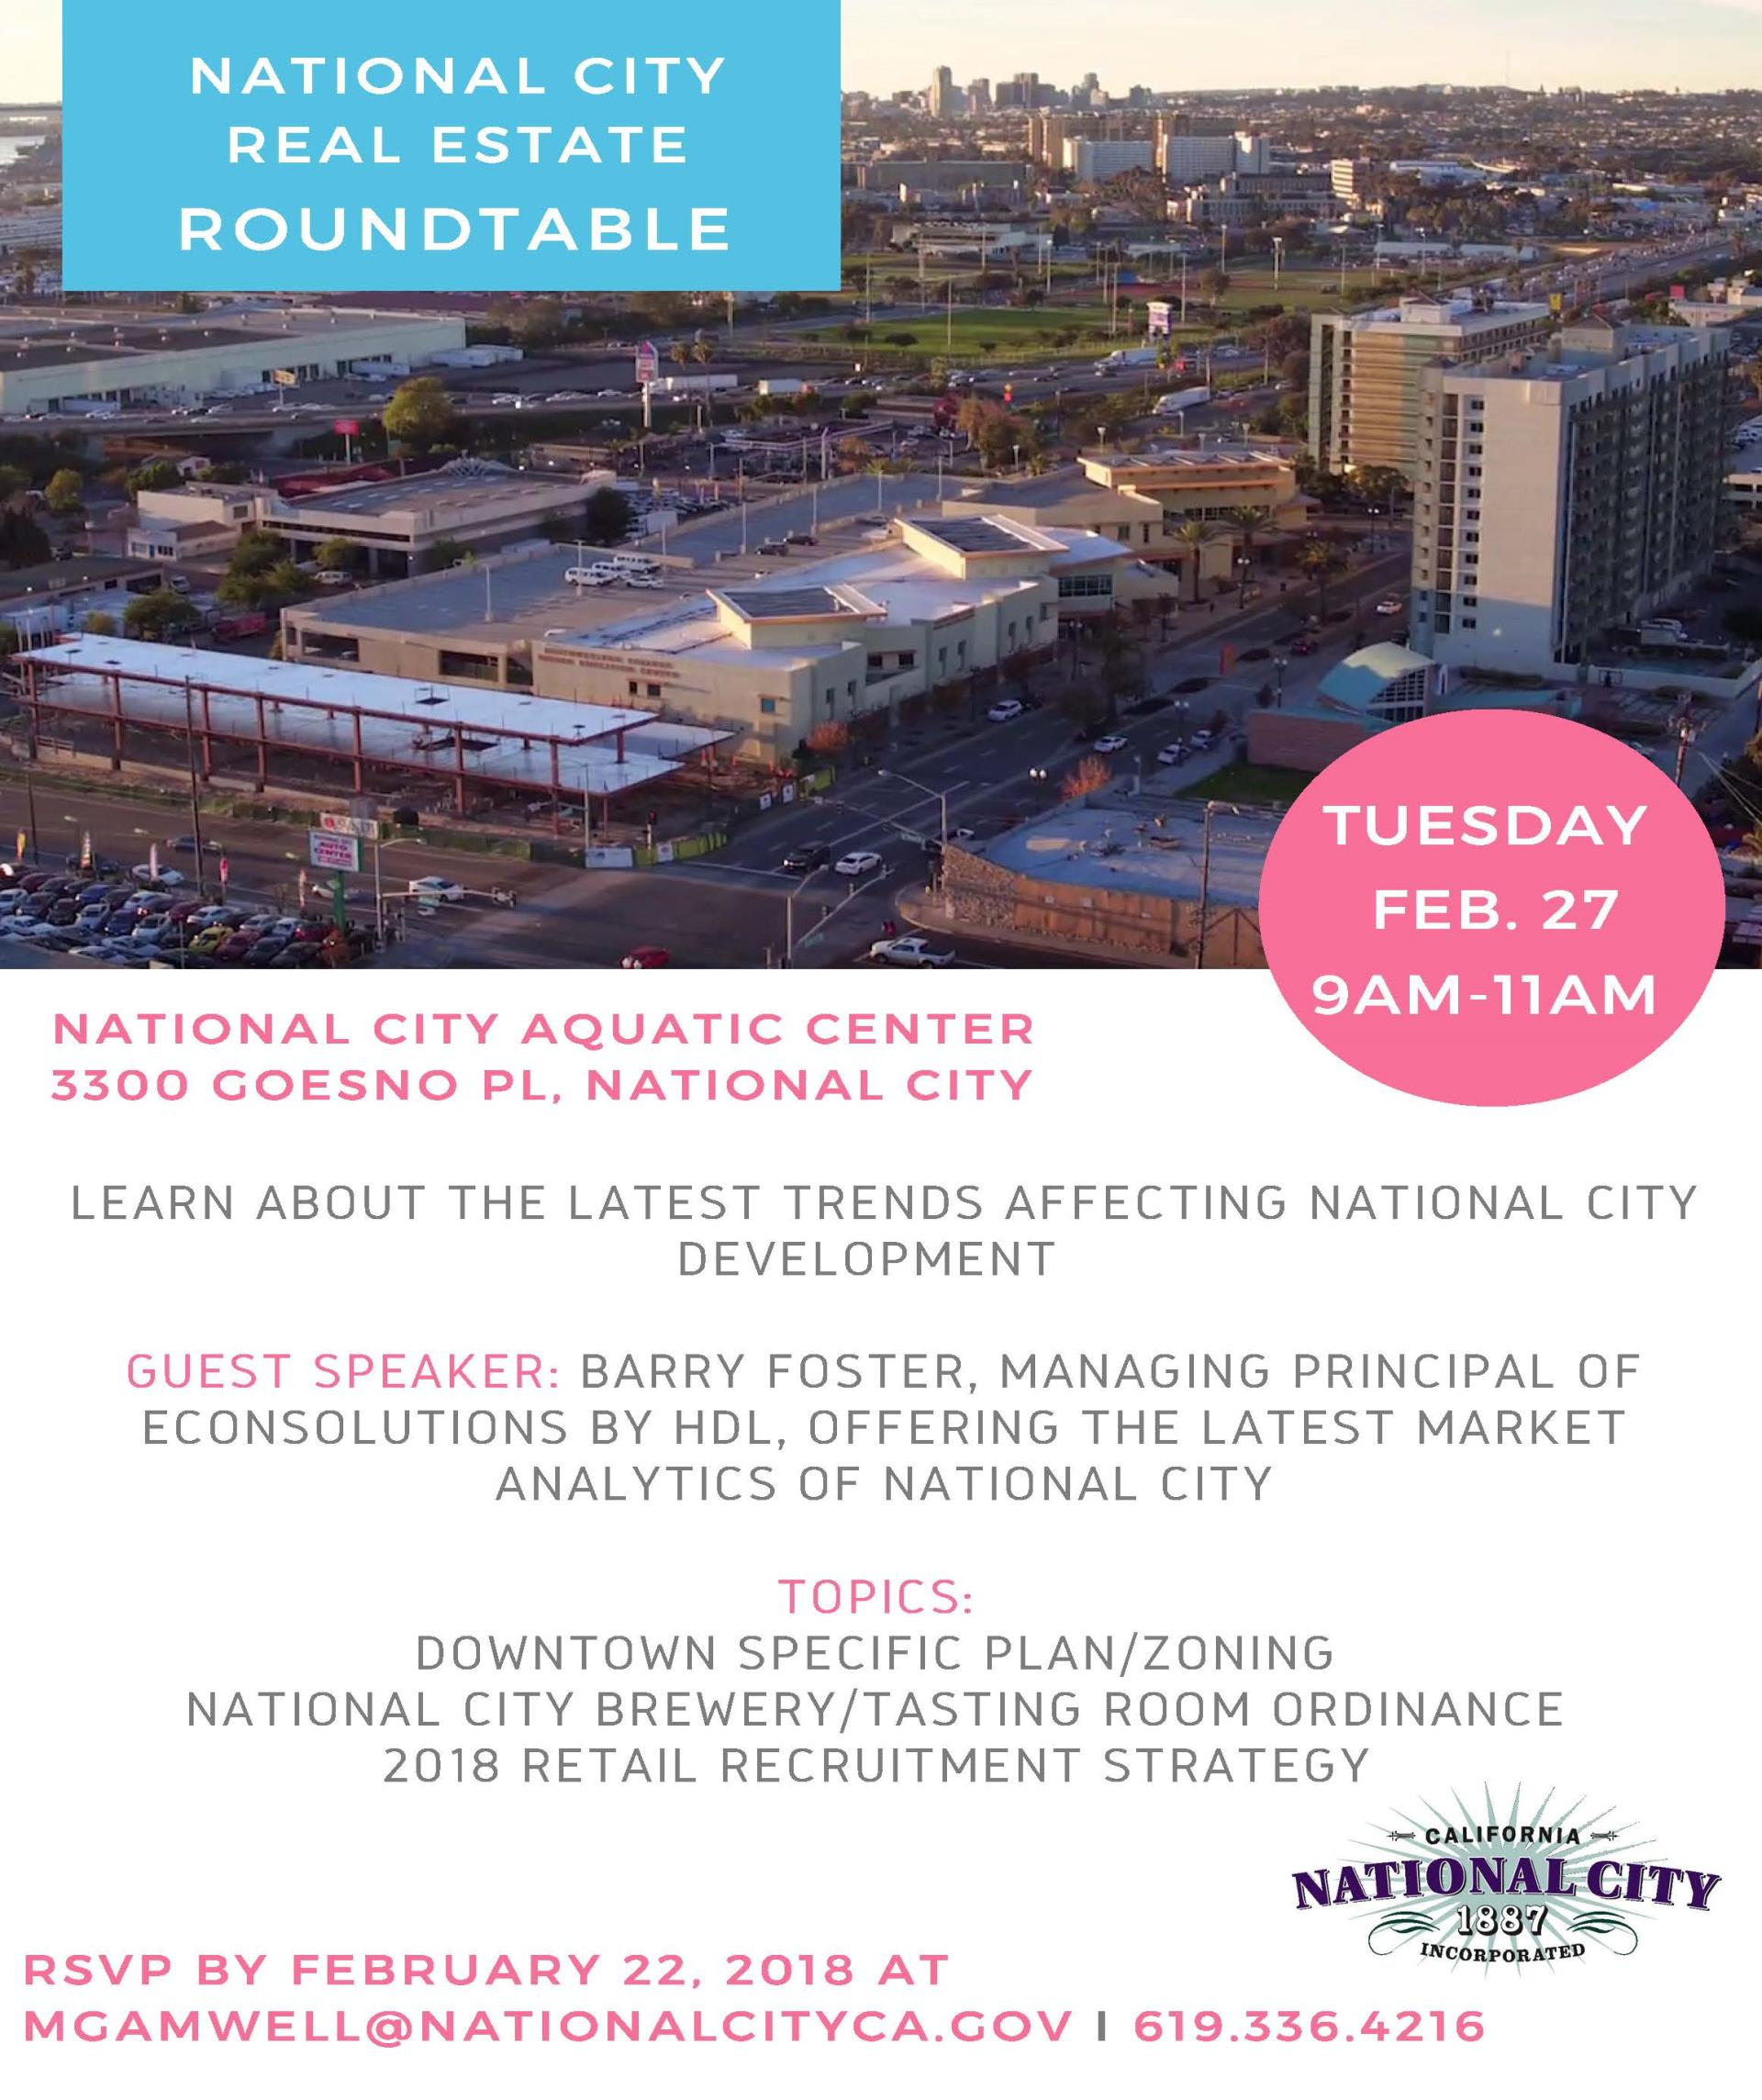 NC Real Estate Roundtable (1)